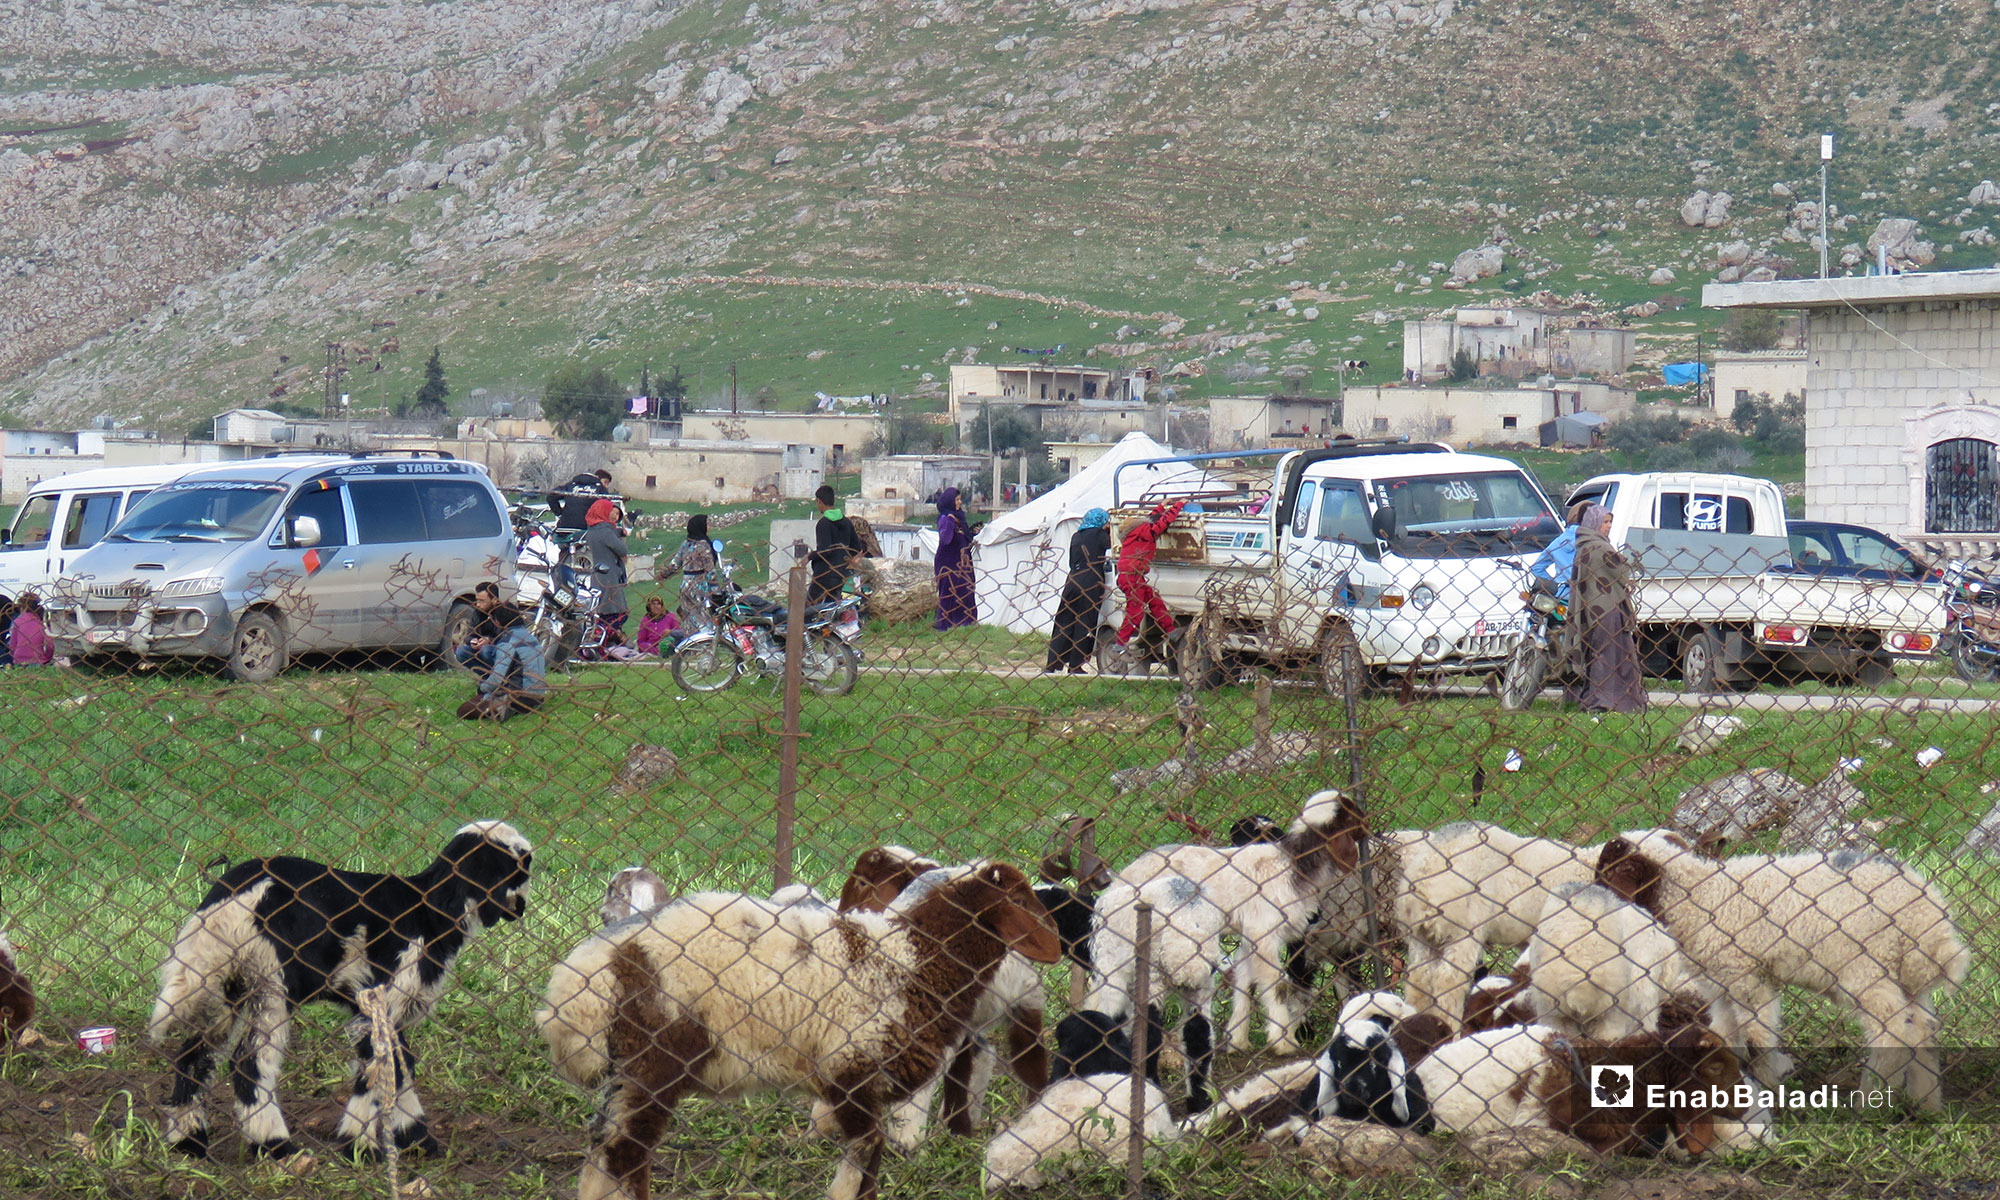 The displacement of people from the village of al-Huwayz to the village of Shair al-Maghar, under the protection of the Turkish observation point in al-Ghab Plain – March 18, 2019 (Enab Baladi)